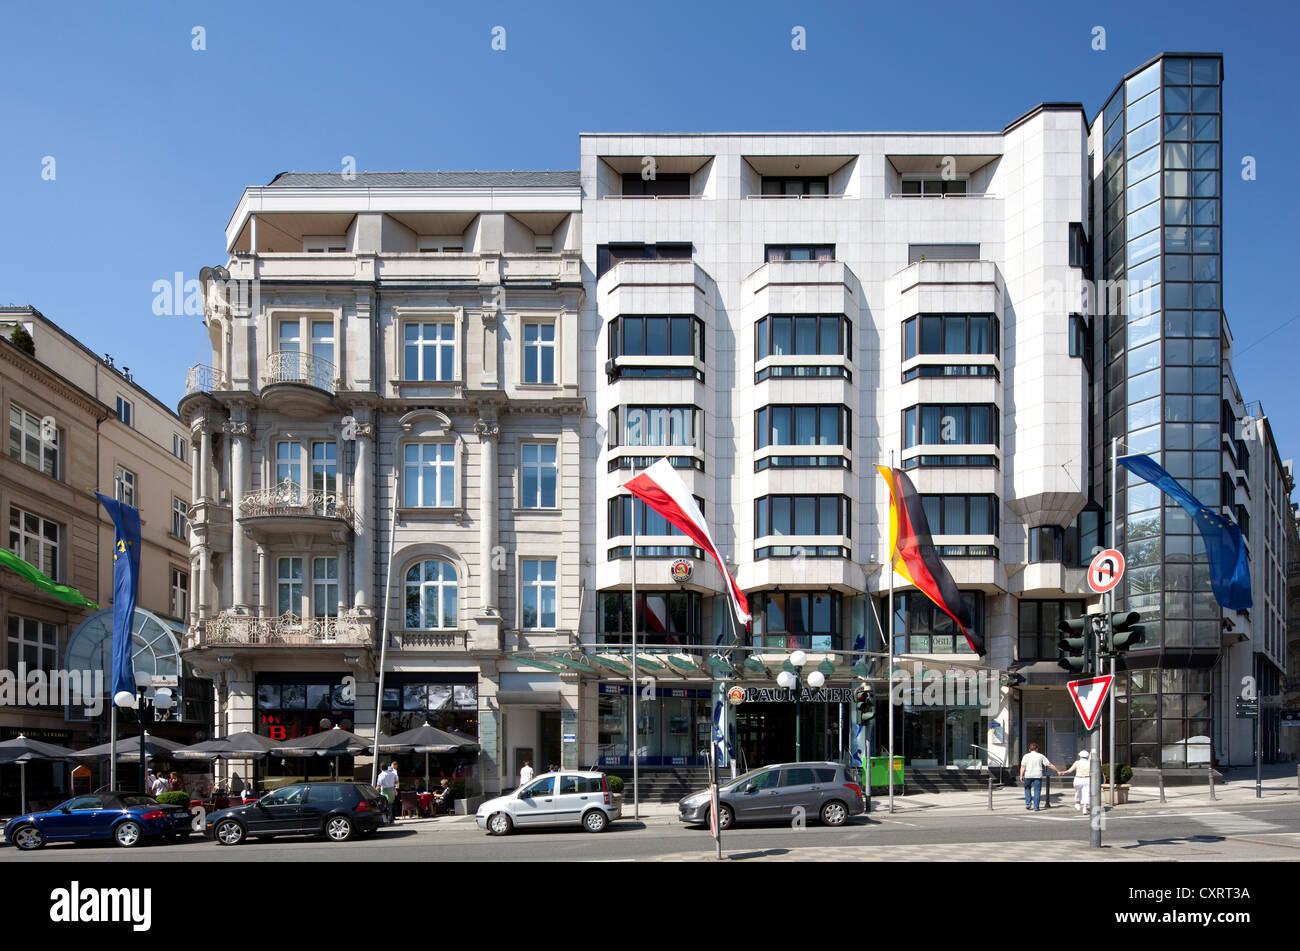 Offices and commercial properties on Wilhelmstrasse, nicknamed Rue, Wiesbaden, Hesse, Germany, Europe, PublicGround - Stock Image